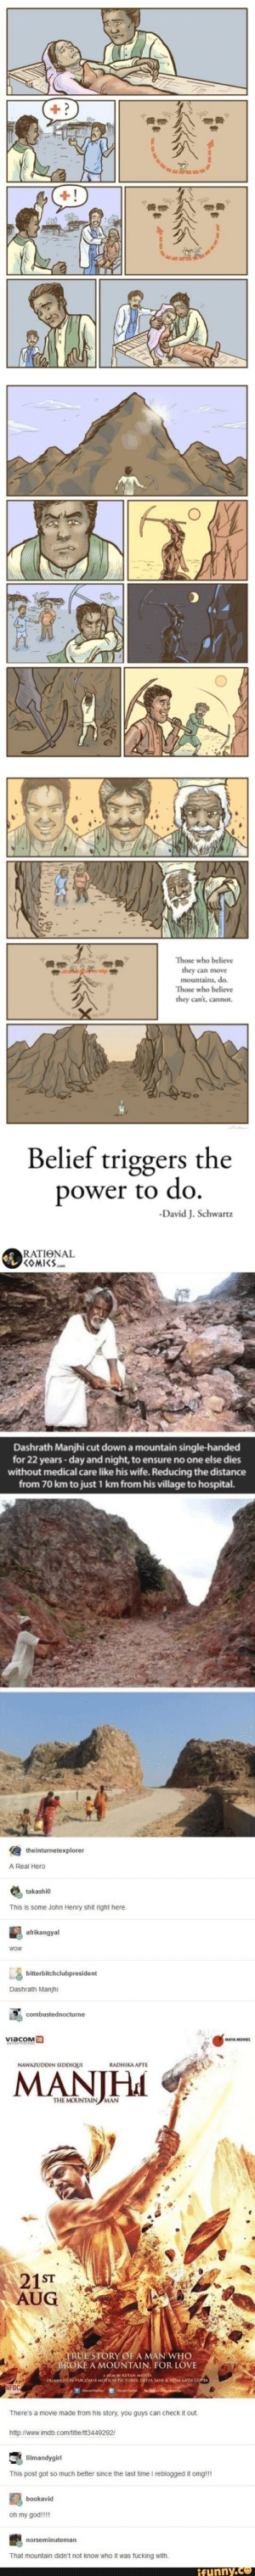 Very wholesome: +!  Those who believe  they can move  mountains, do.  Those who believe  they can't, cannot.  Belief triggers the  power to do  -David J.Schwartz  RATIENAL  KOMICS  Dashrath Manjhi cut down a mountain single-handed  for 22 years-day and night, to ensure no one else dies  without medical care like his wife. Reducing the distance  from 70 km to just 1 km from his village to hospital.  theinturnetexplorer  Real Hero  takashi  This is some John Henry shit right here  afrikangyal  WOW  bitterbitchclubpresident  Dashrath Manjhi  combustednocturne  ViacOм е  MAYA MOVrs  NAWAZUDDIN SIDDIQUI  RADHIKA APTE  MANIH  THE MOUNTAIN MAN  21ST  AUG  4TRUE STORY OF A MAN WHO  BROKE A MOUNTAIN. FOR LOVE  HCID BEVIAcOMIB MOTION FISTURES DELCA SAHIToINA LATH GUPTA  There's a movie made from his story, you quys can check it out.  http://www.imdb.com/title/t13449292/  lilmandygirl  This post got so much better since the last time I reblogged it omg!!!  bookavid  oh my god!!!!  norseminuteman  That mountain didn't not know who it was fucking with  REUNNY.Co Very wholesome